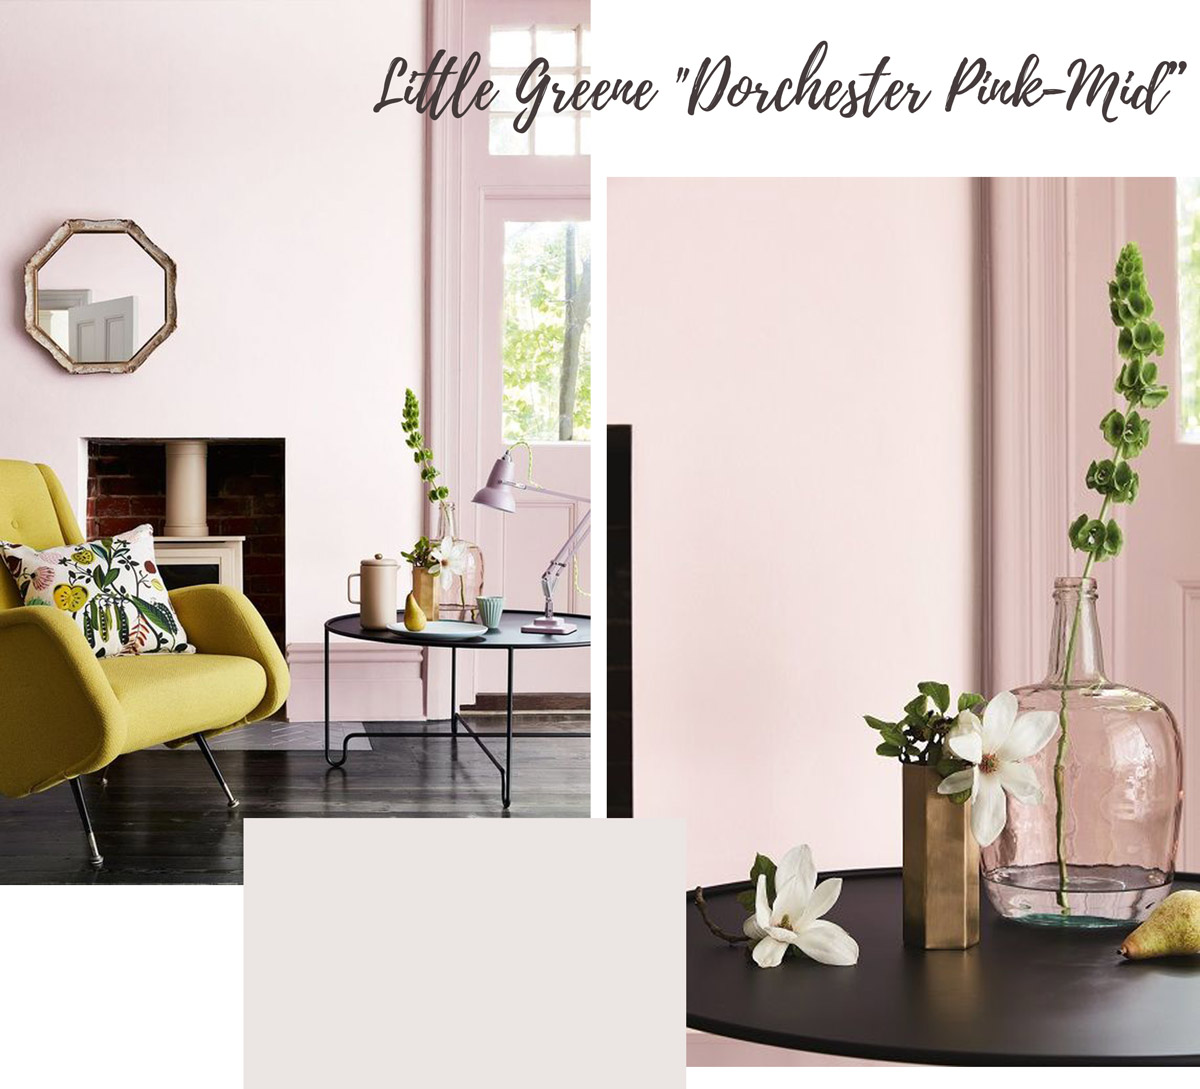 Pink Shades interior-trends-2017-pink-dorchester-pink-mid-little-greene-authentic-interior